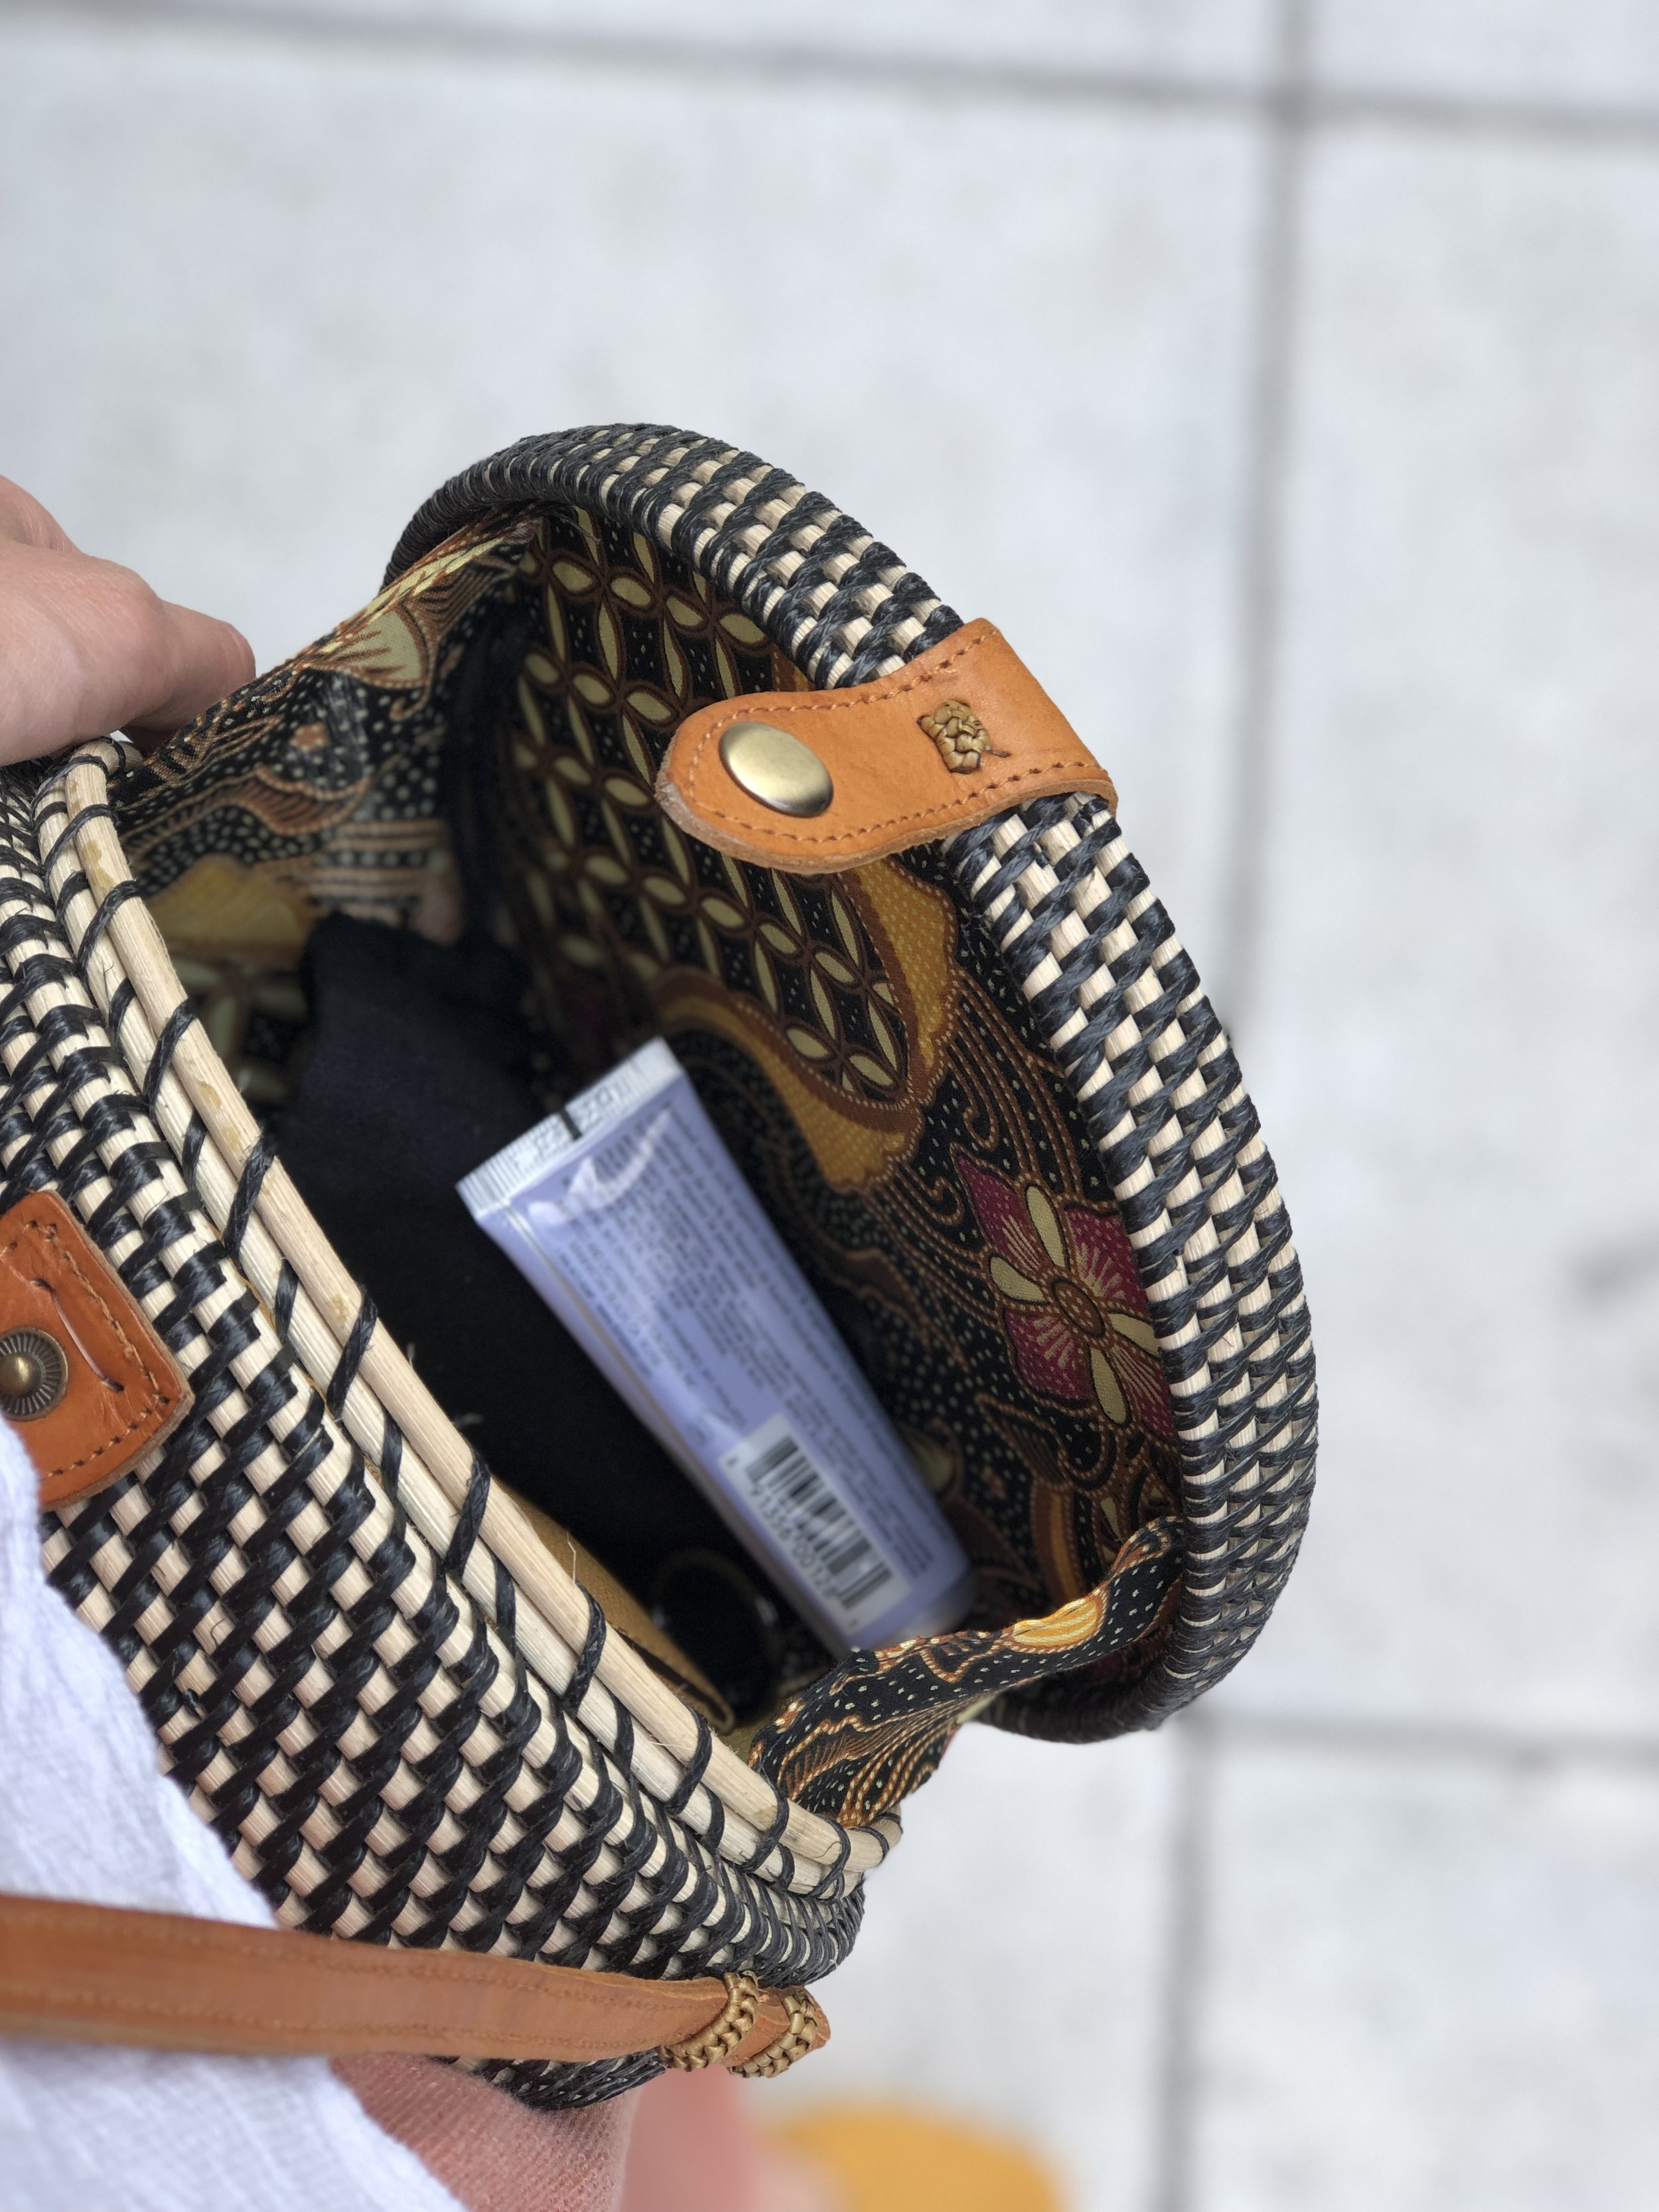 A peek at what's inside. I love the colorful patterned fabric that is used to line the inside of the bag.